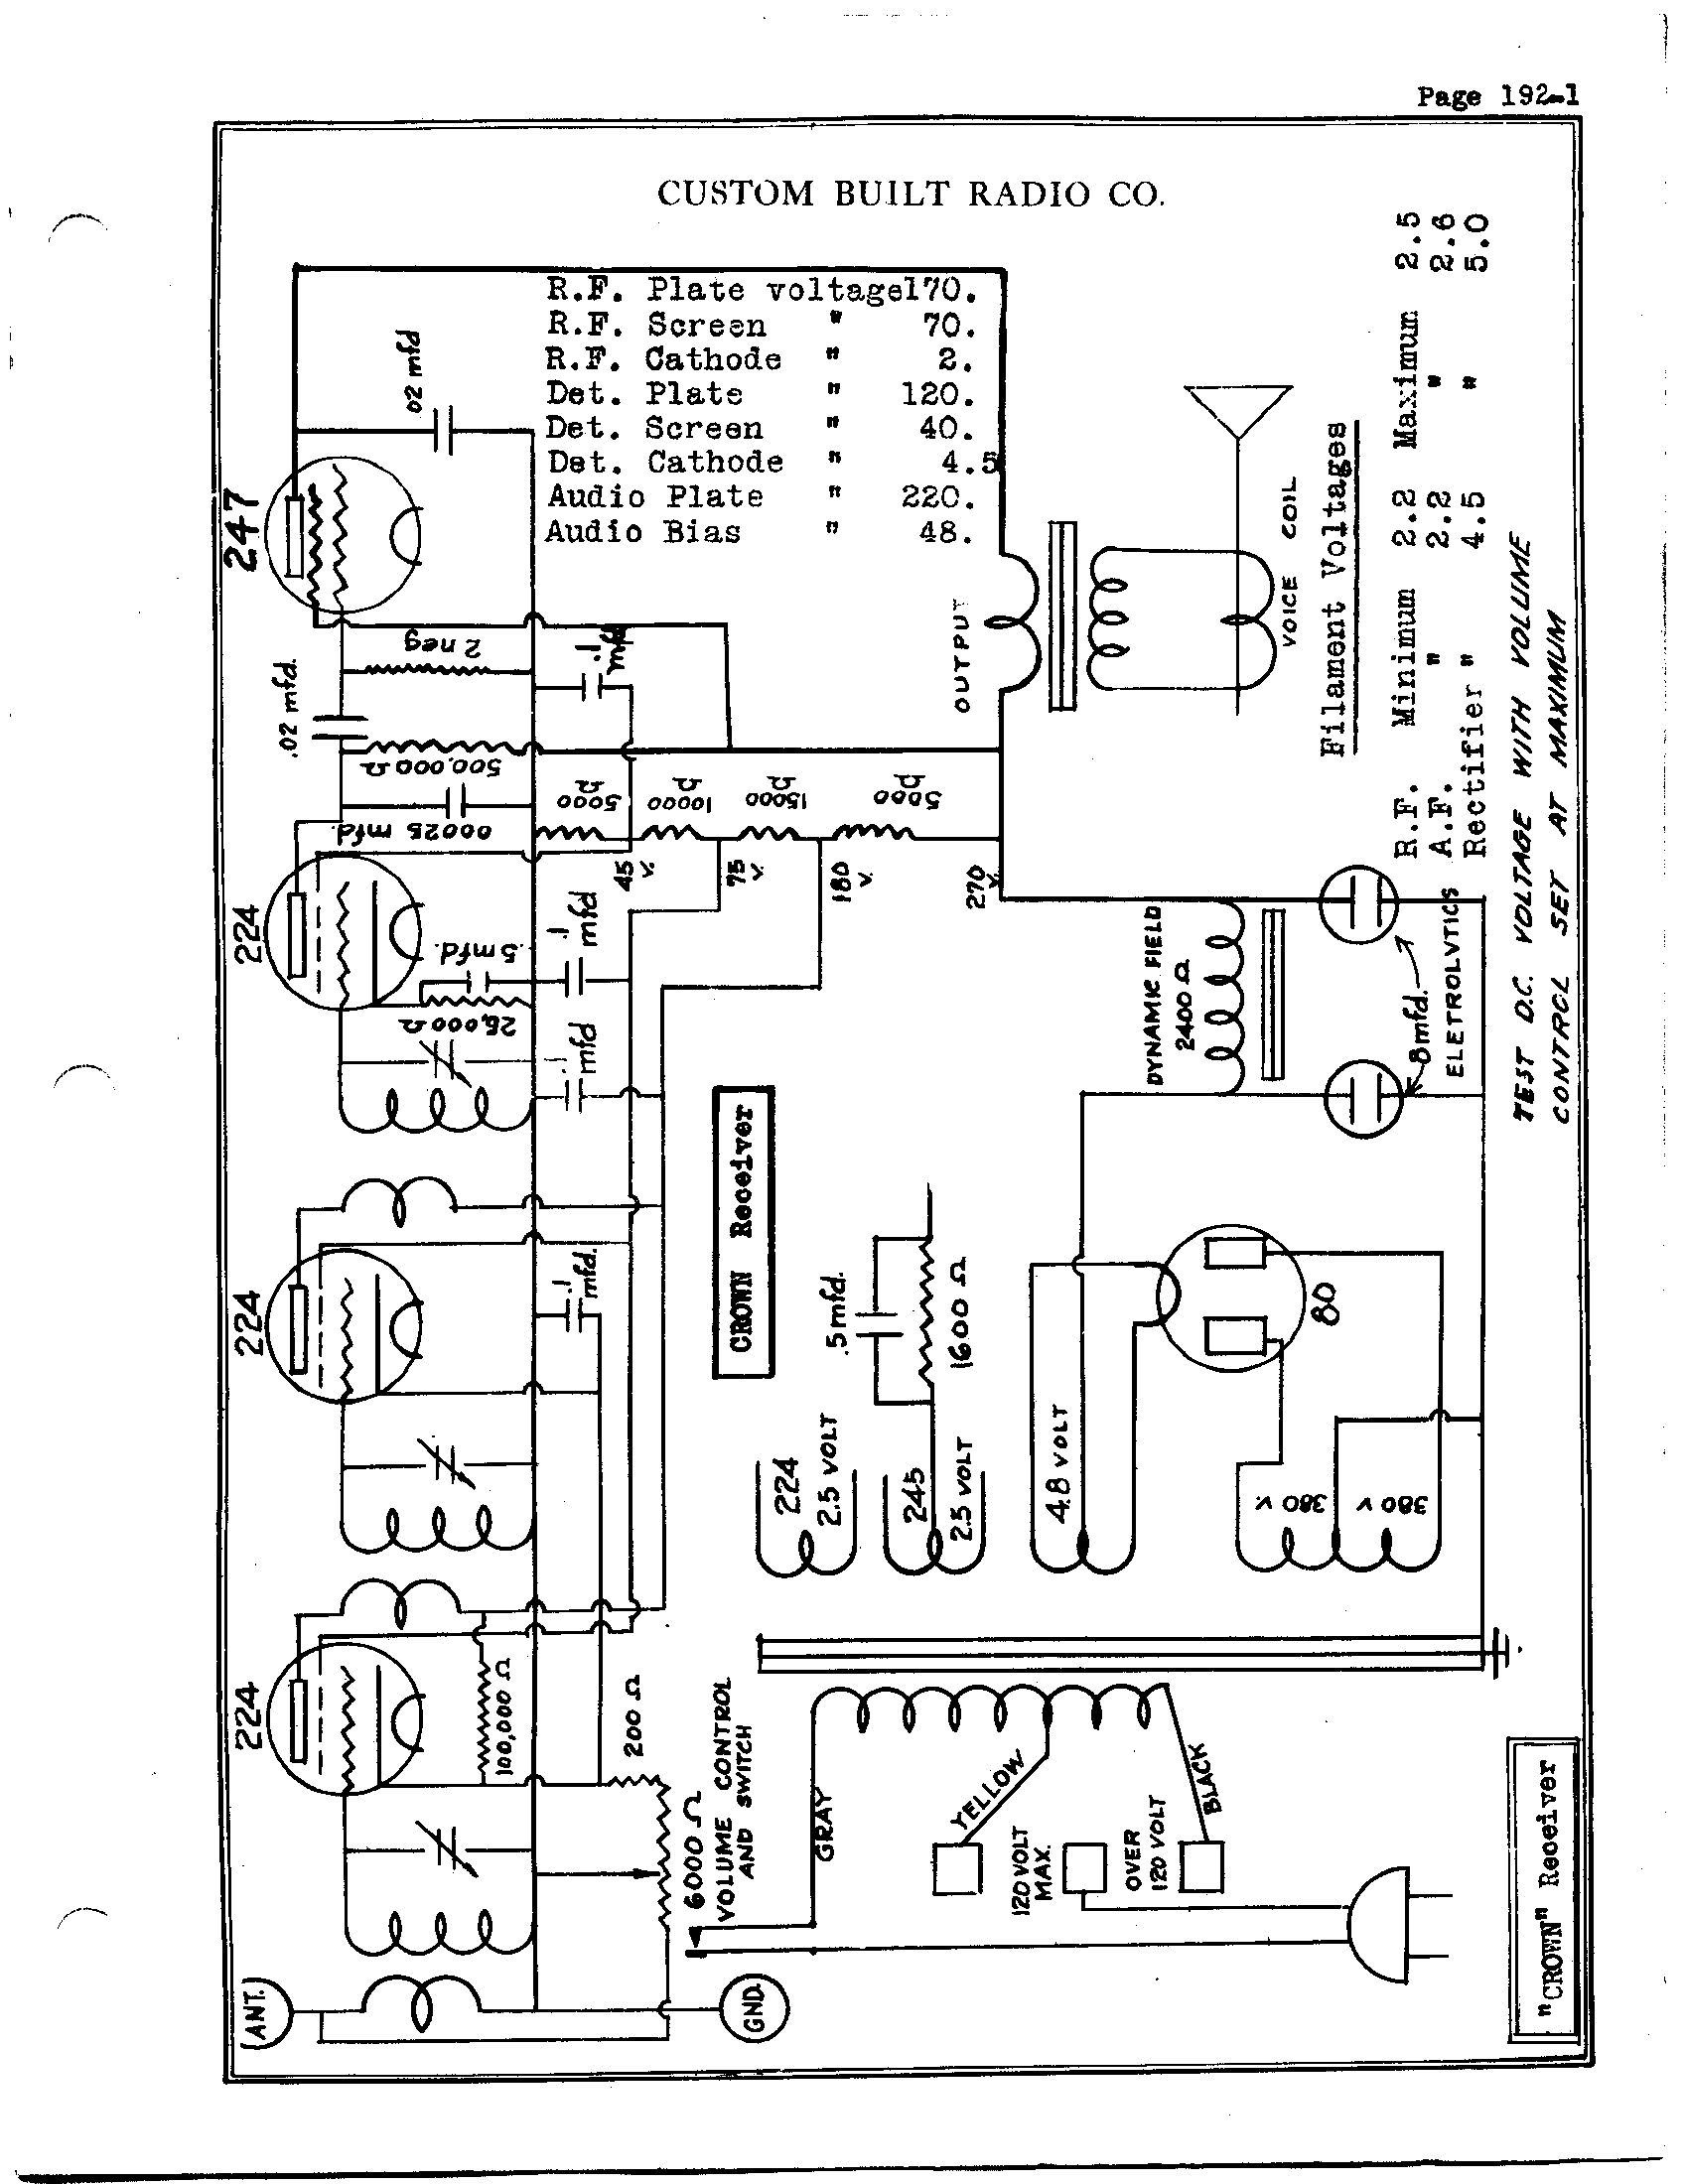 hight resolution of custom built radio co crown receiver antique electronic supplycrown receiver schematic